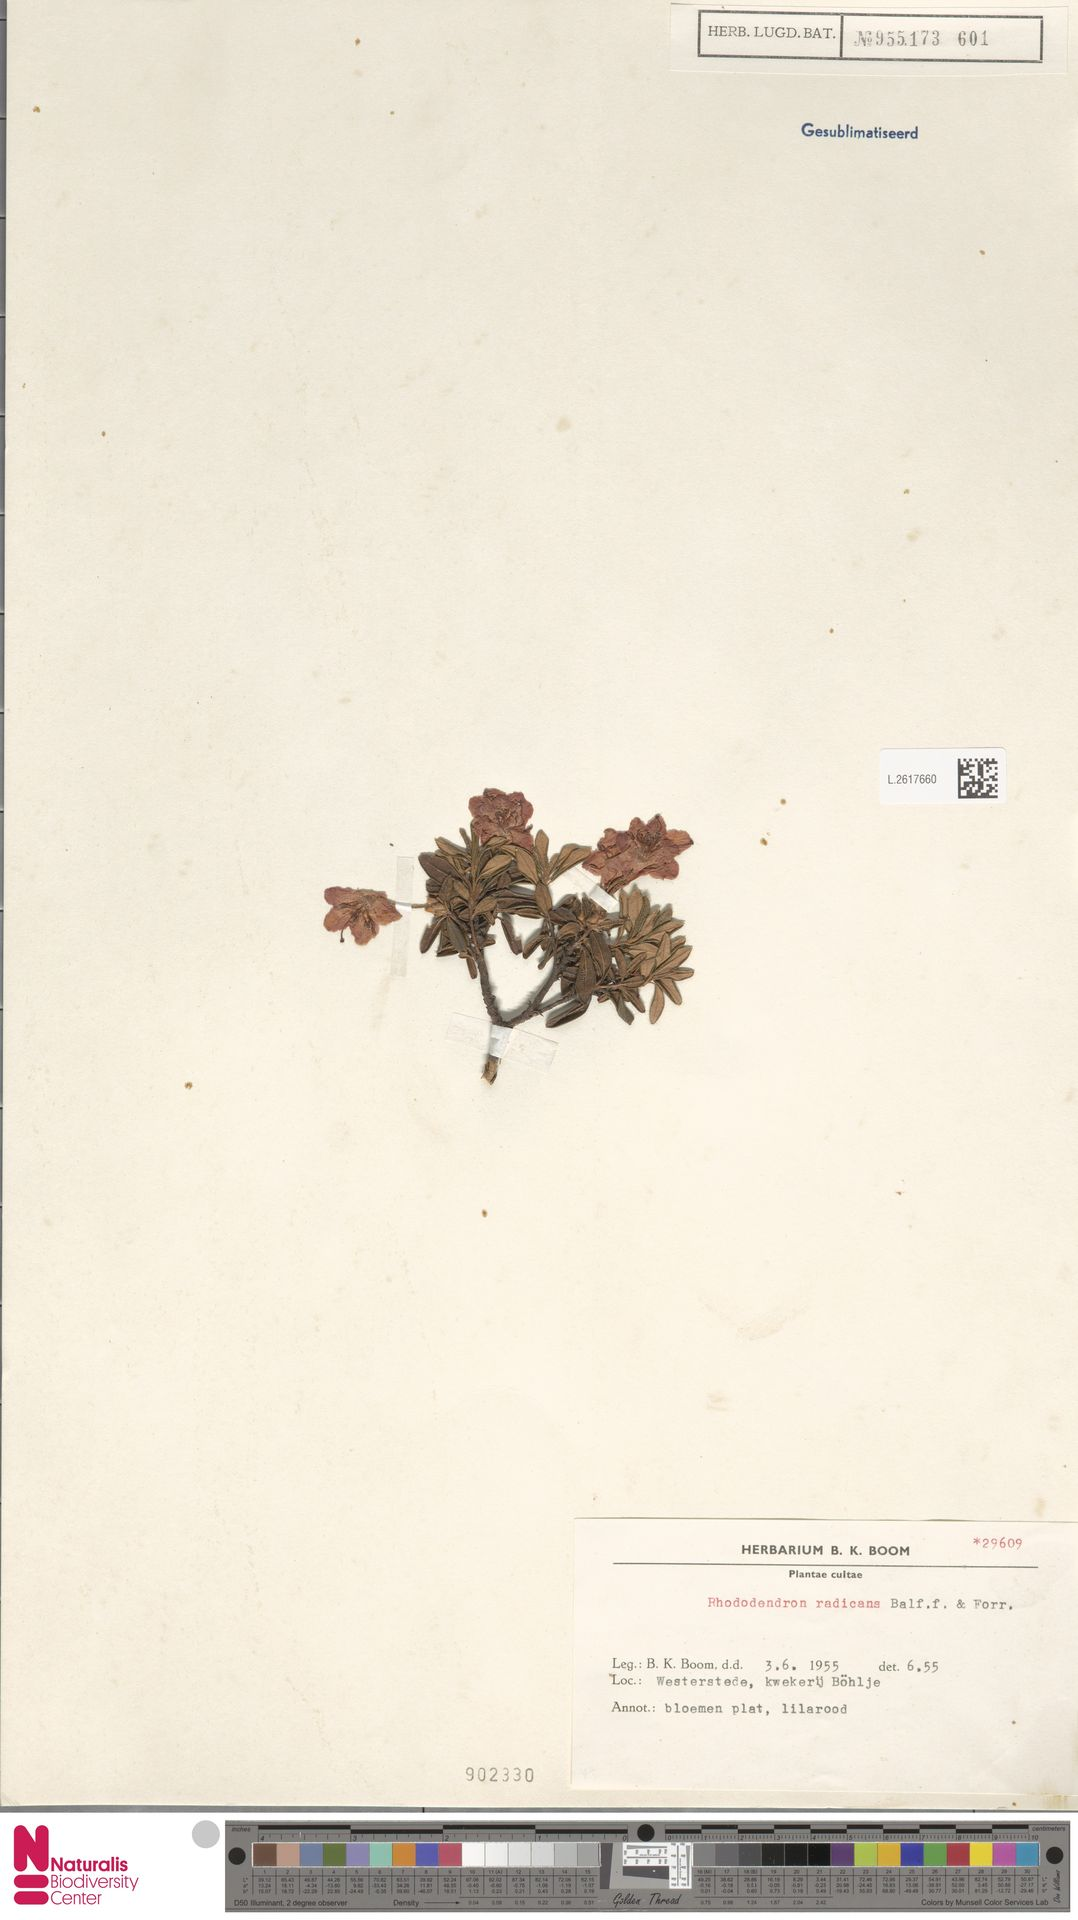 L.2617660 | Rhododendron radicans Balf.f. & Forrest